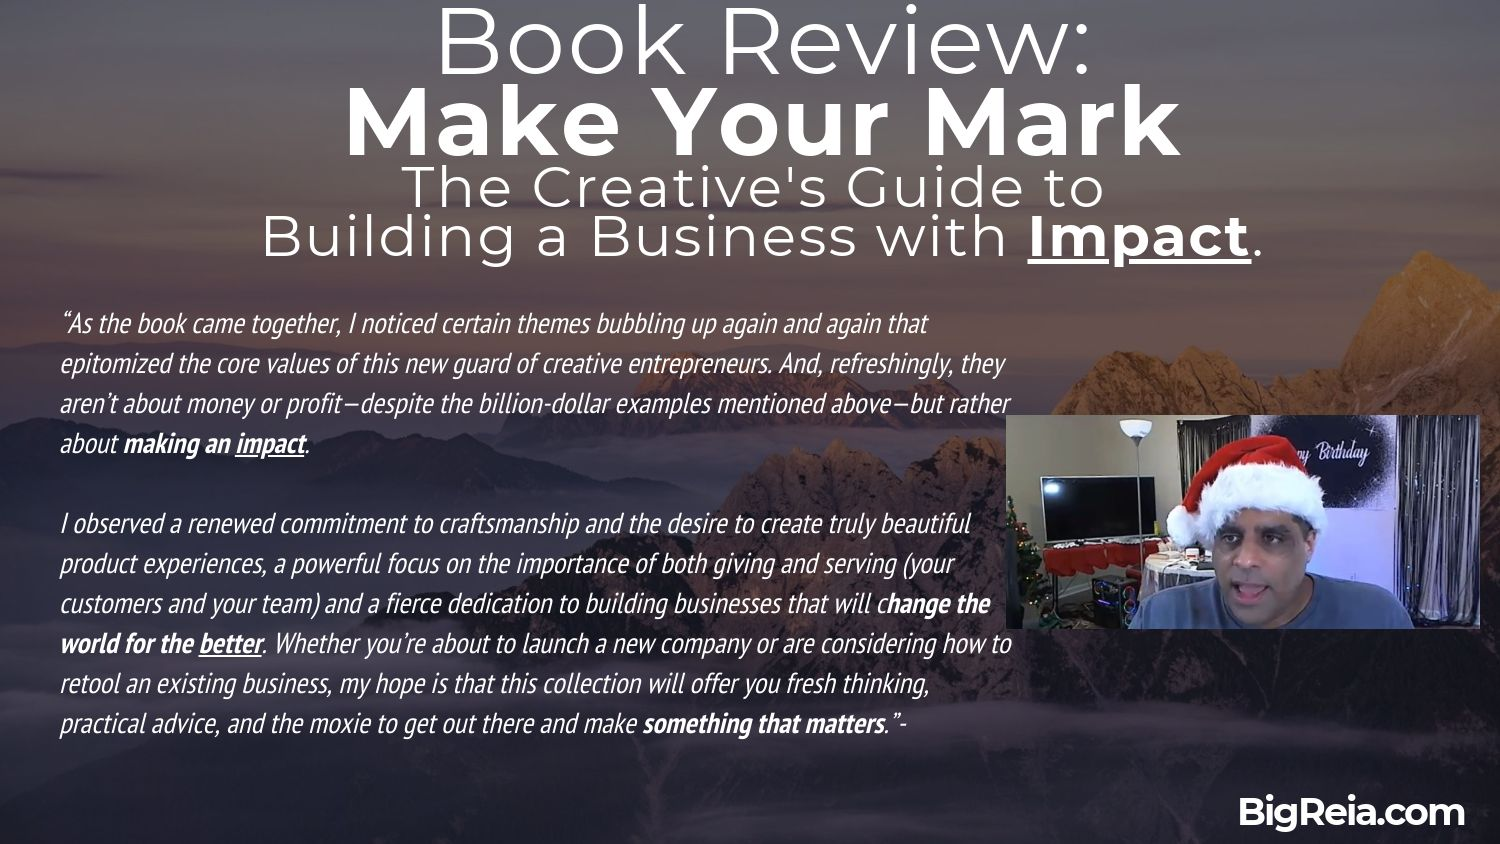 Azam's book review of Make Your Mark